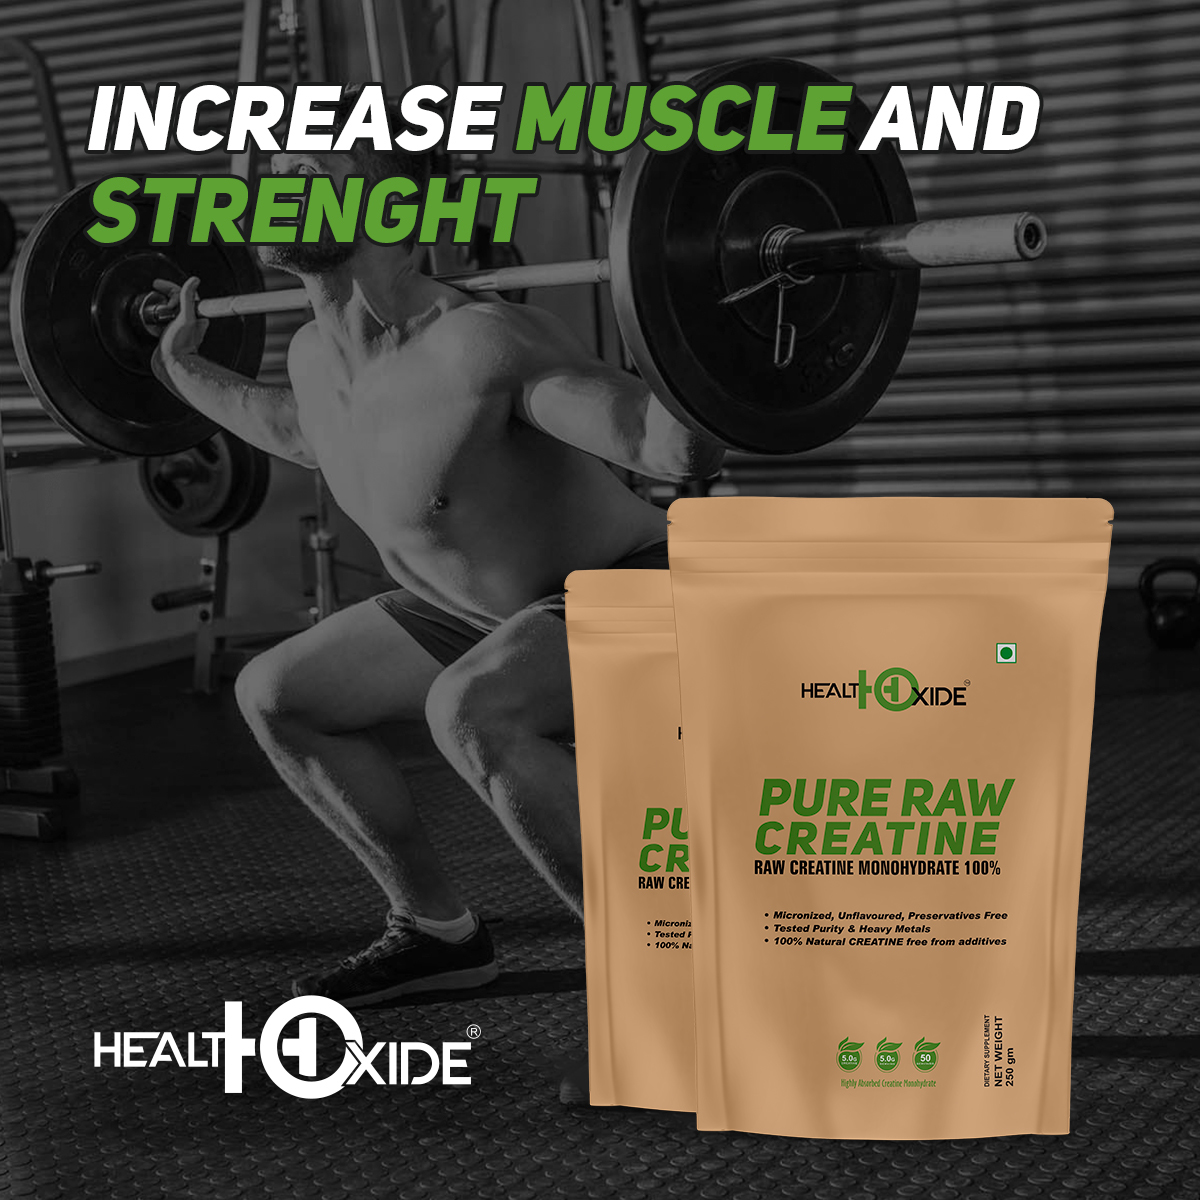 HealthOxide Pure Creatine Monohydrate for Muscle Building - 250 gm